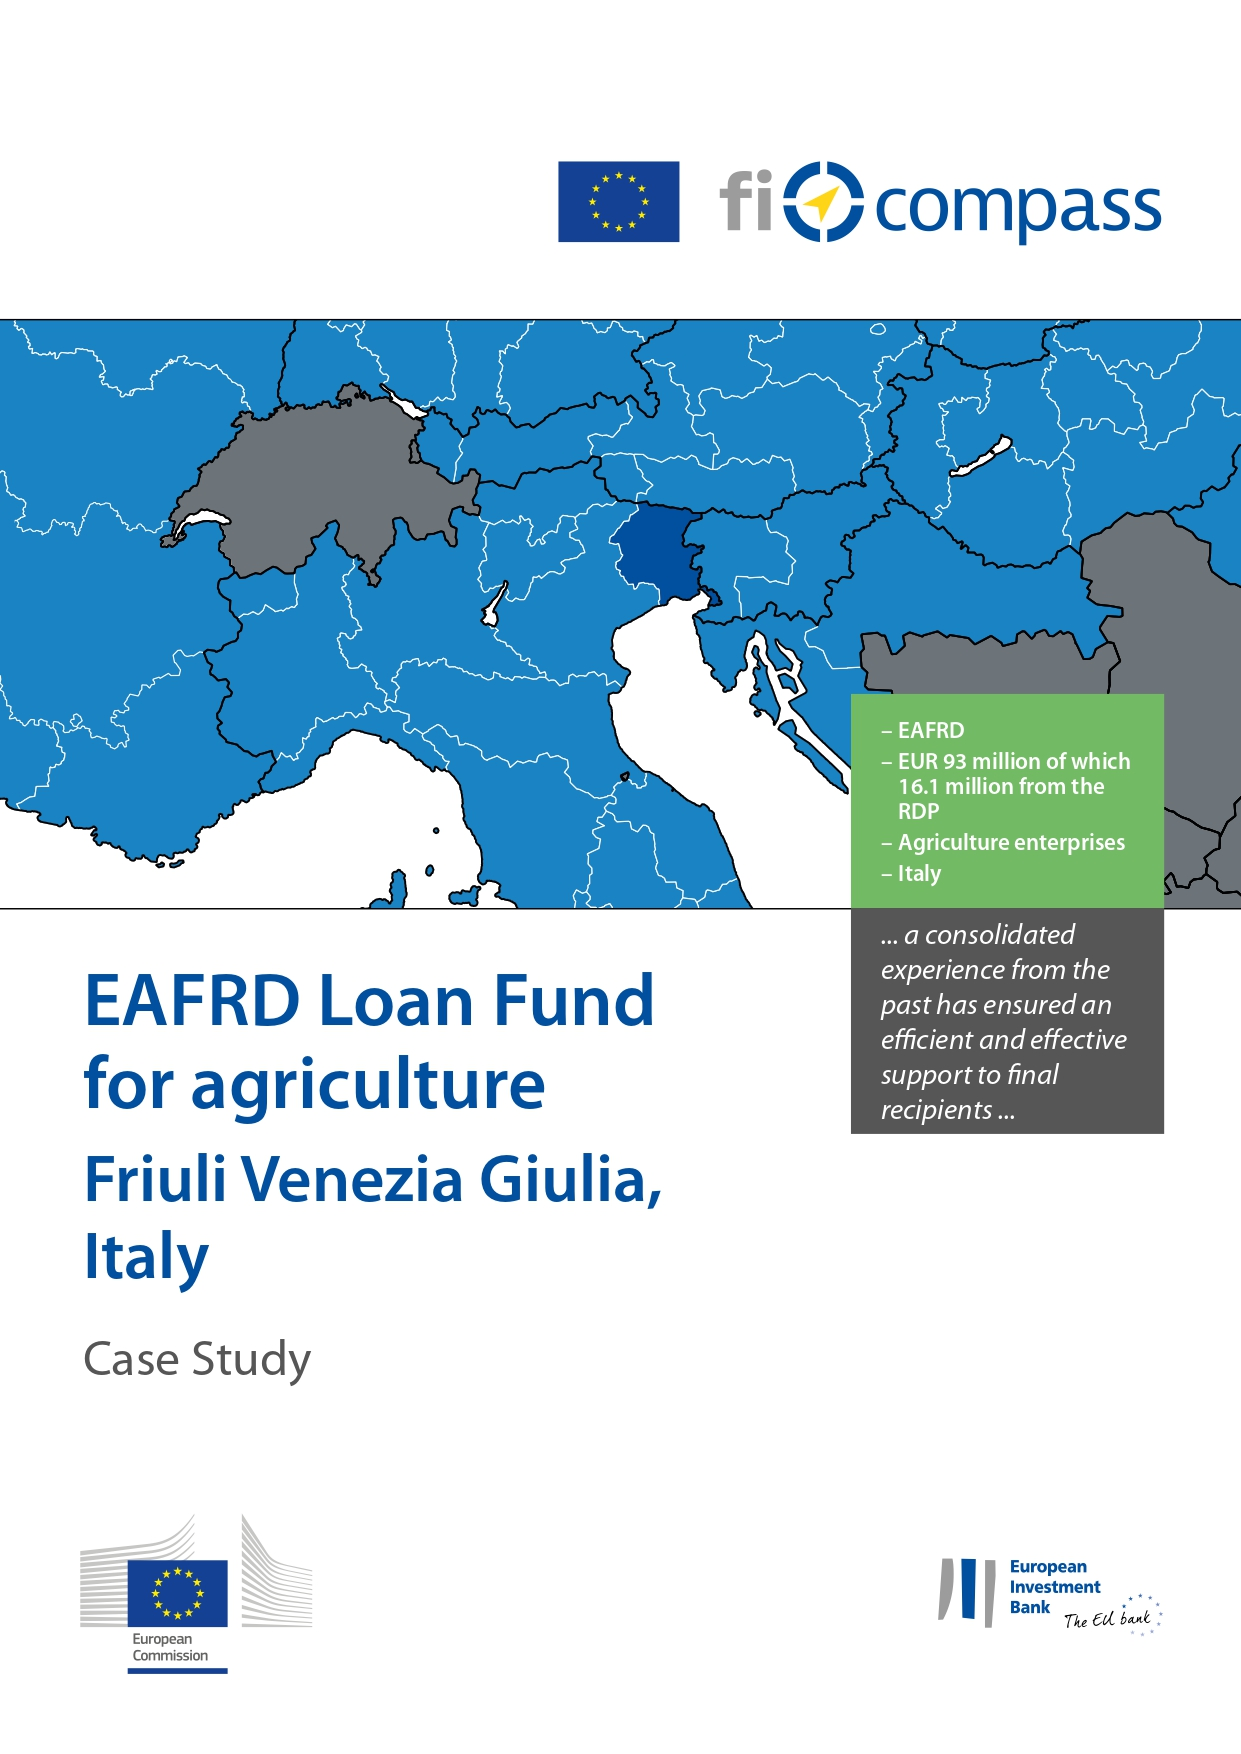 eafrd loan fund for agriculture friuli venezia giulia italy